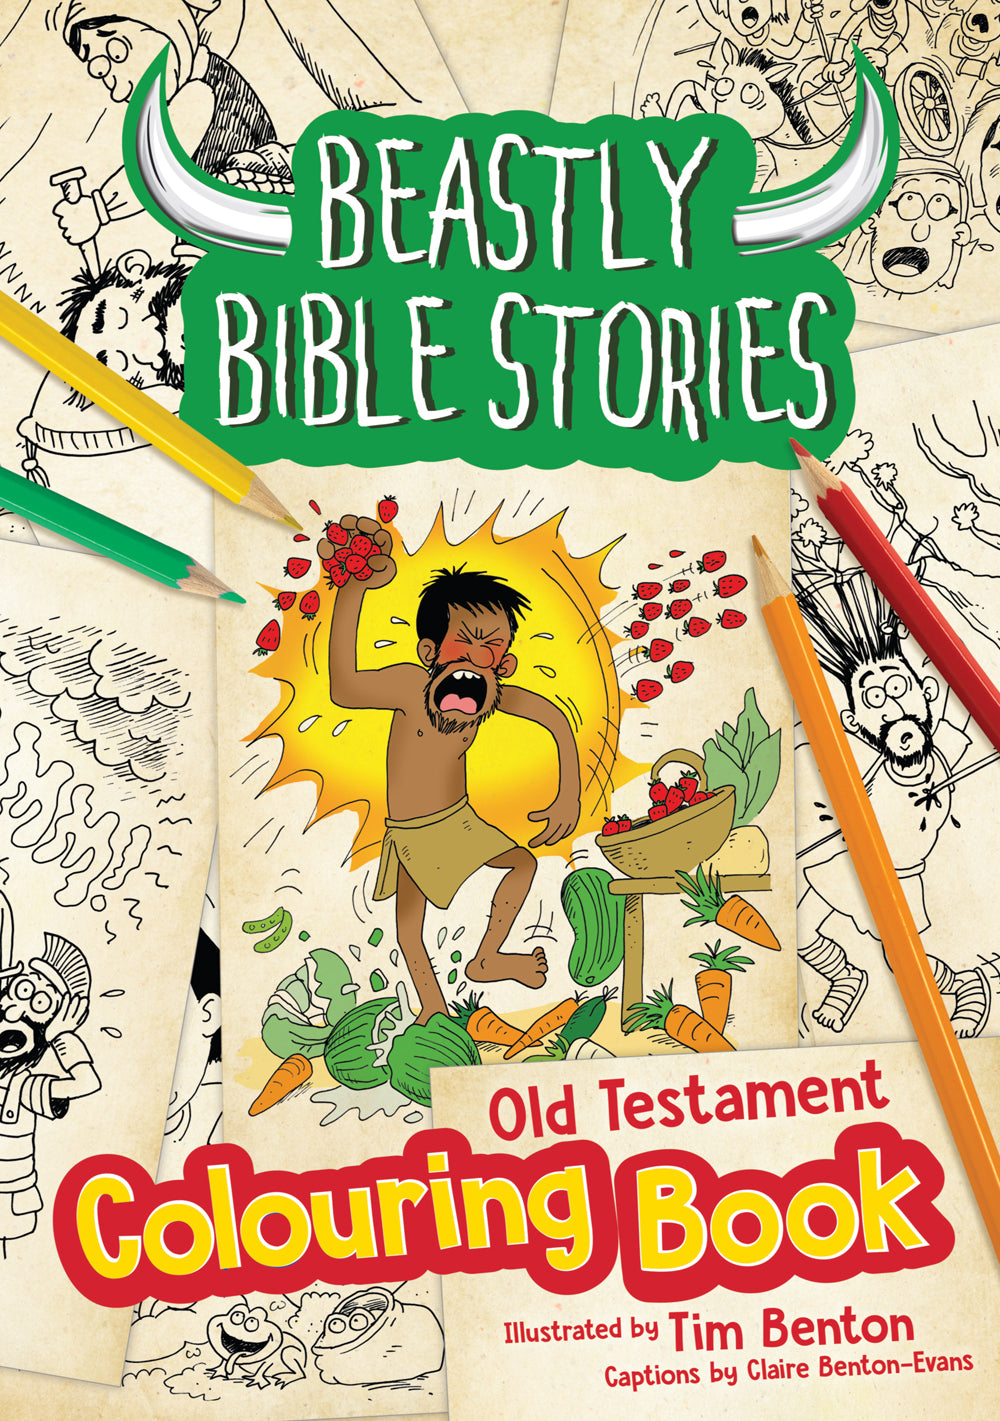 Beastly Bible Stories - Colouring Book - Old TestamentBeastly Bible Stories - Colouring Book - Old Testament